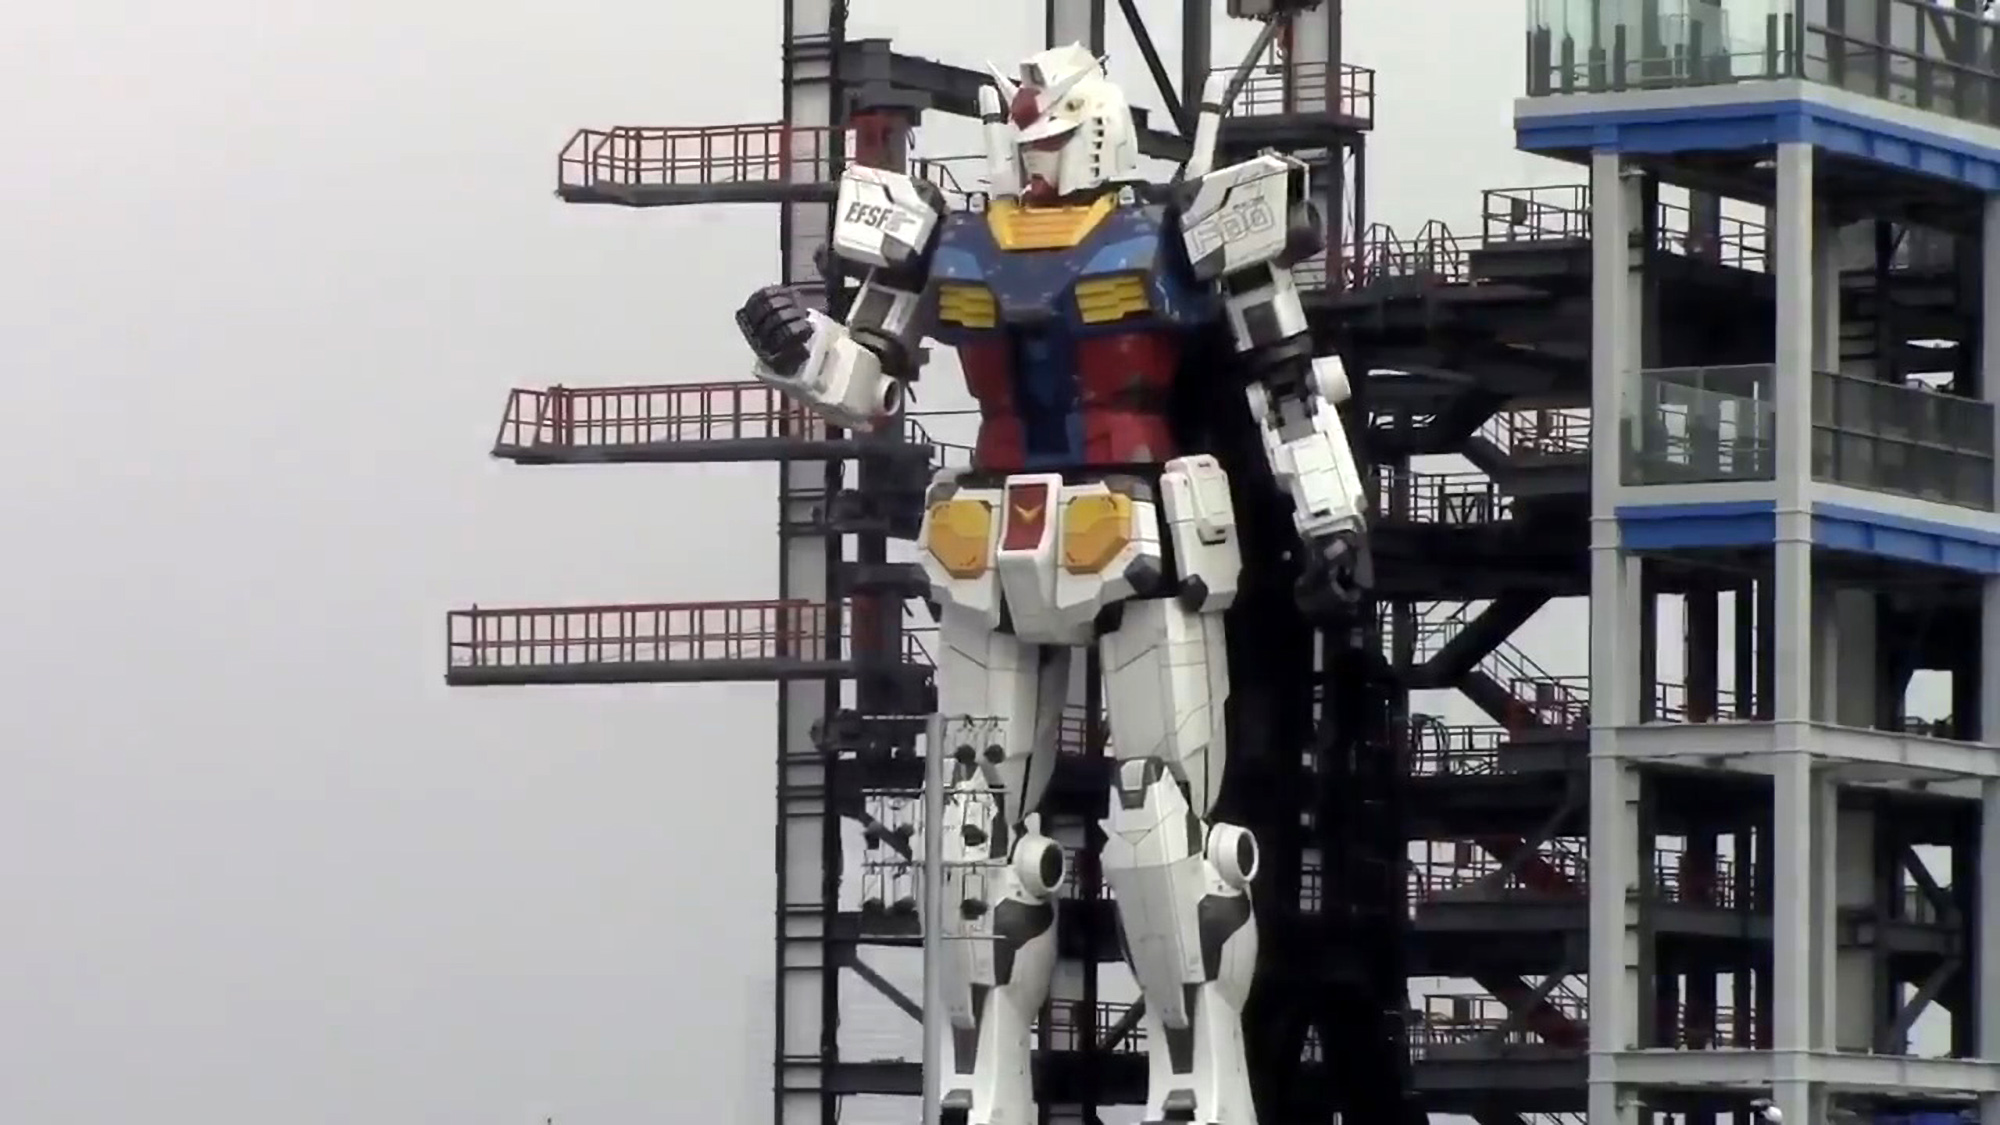 VIDEO: Tests On 60-Foot-Tall Robot Excite Japanese Fans